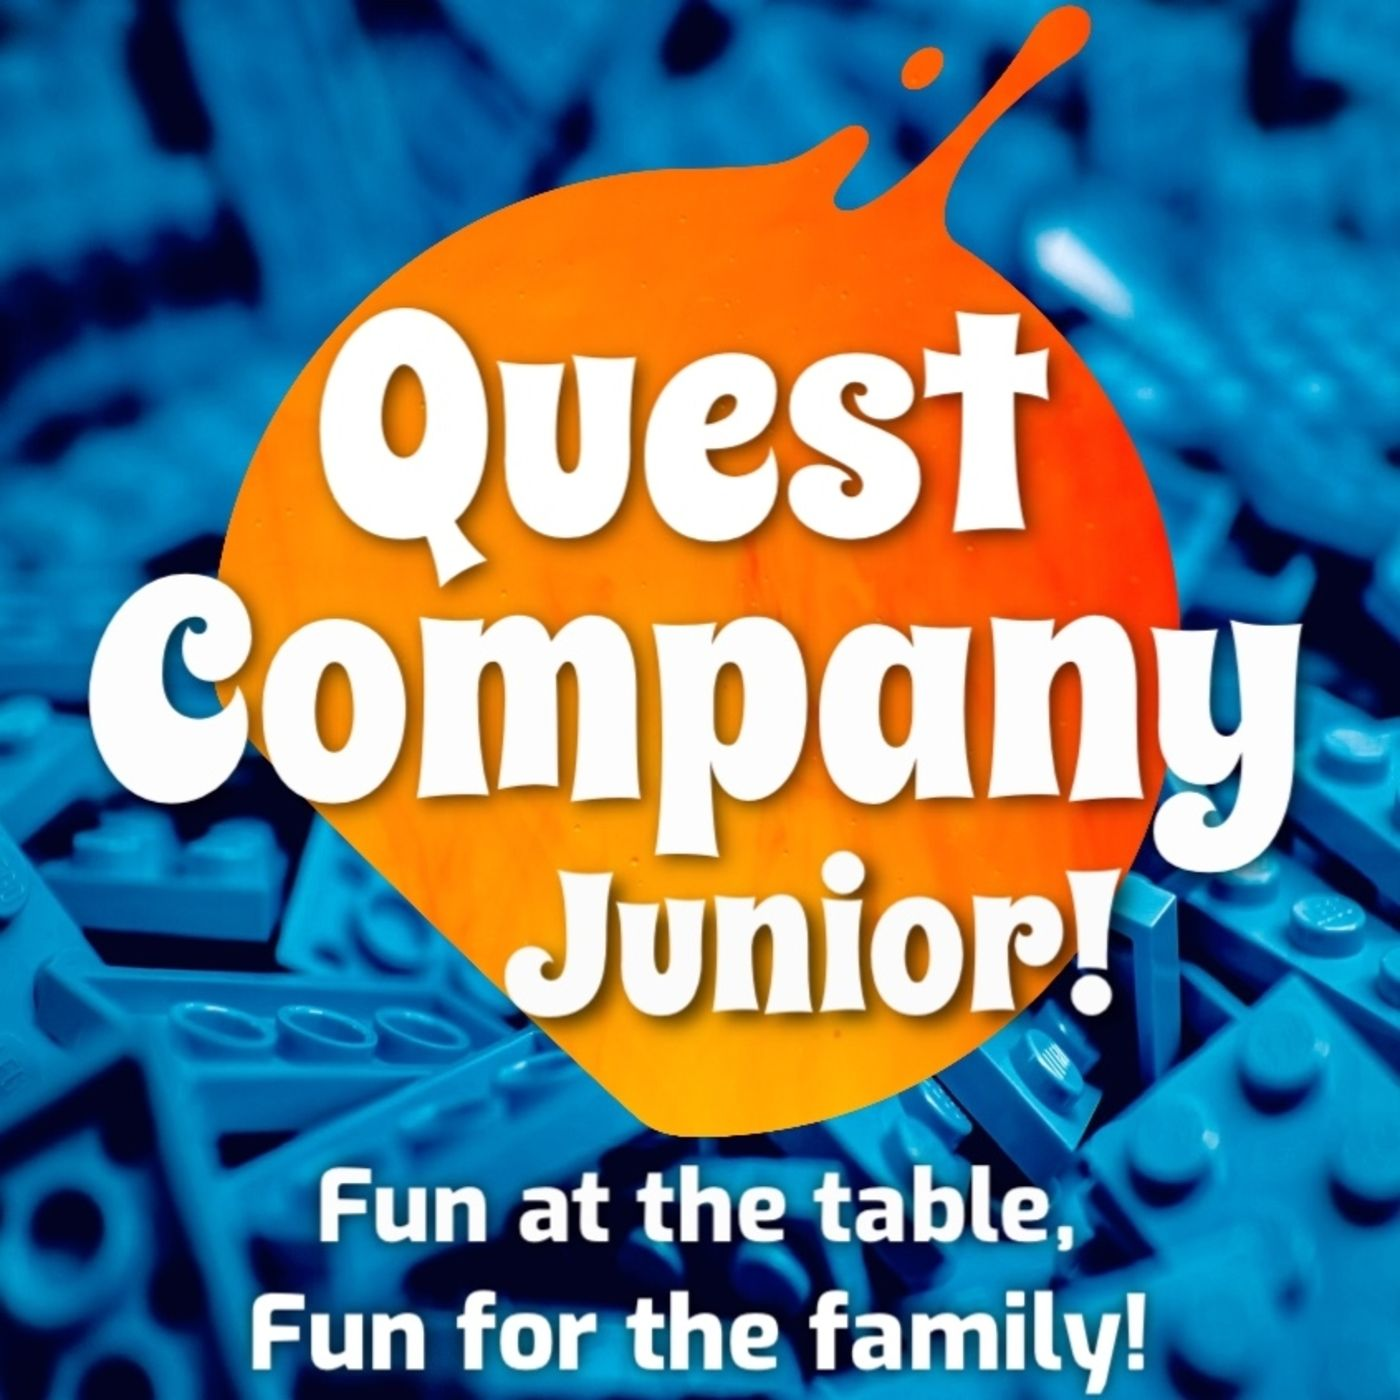 Quest Company Junior